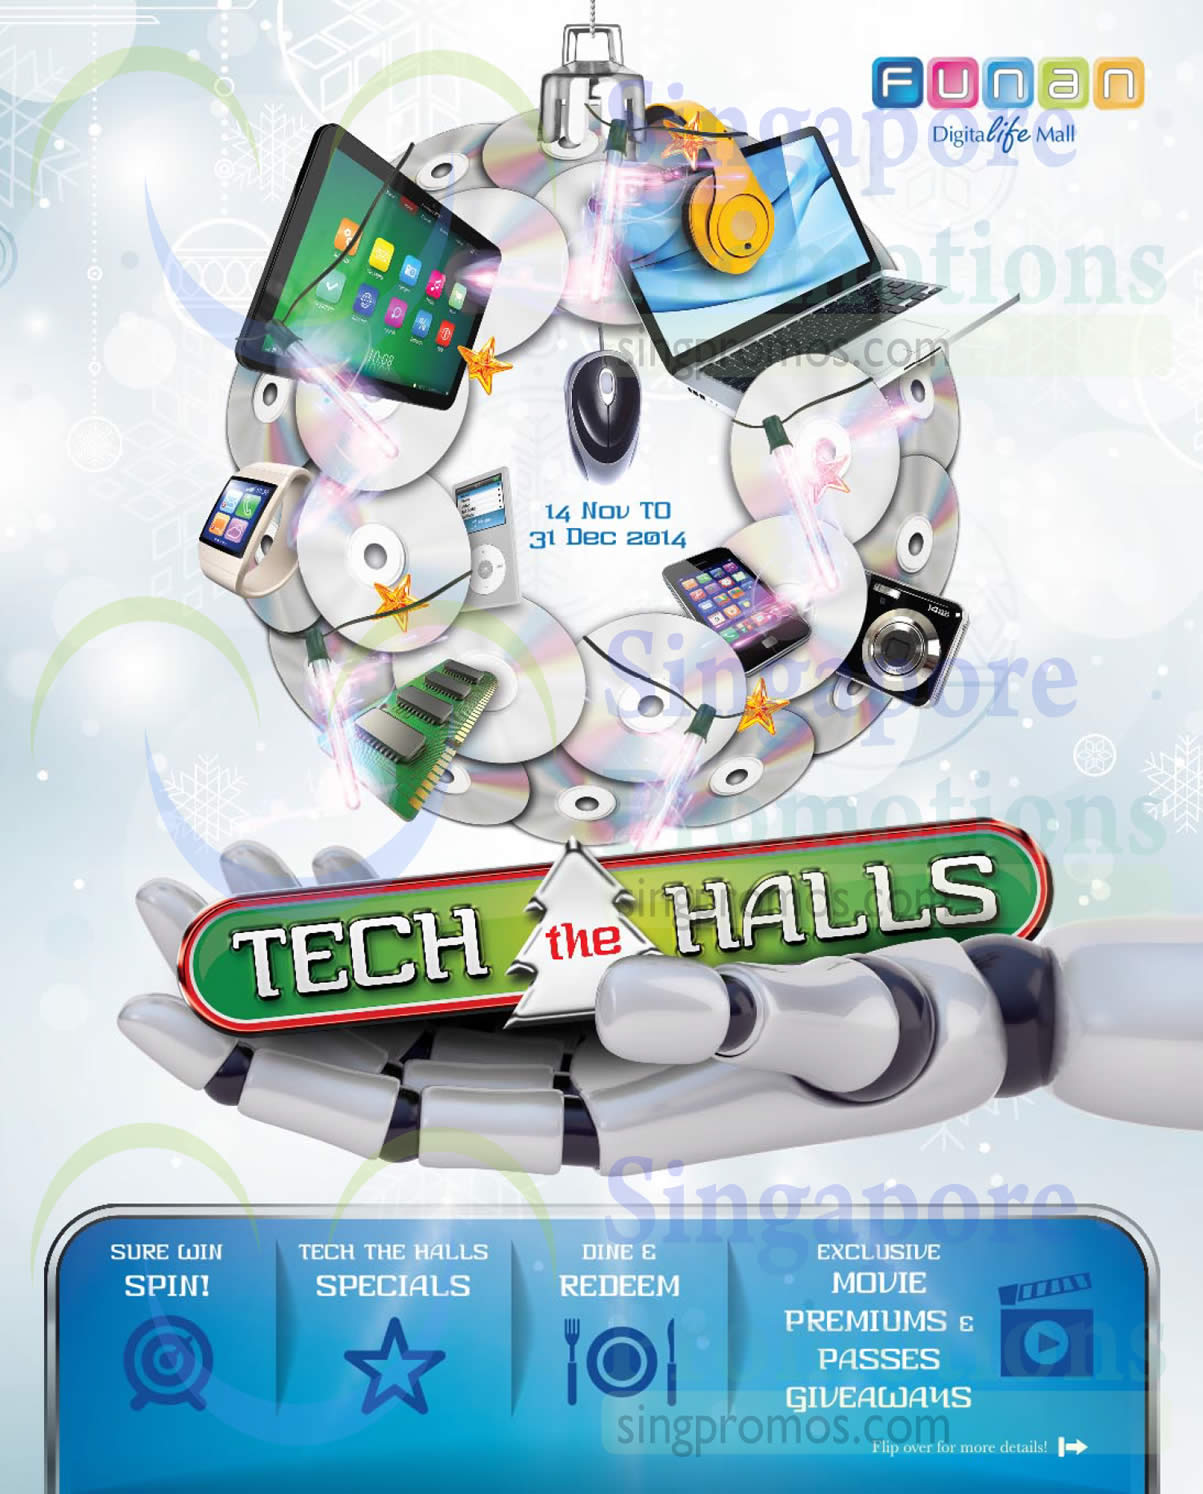 26 Nov Tech the Halls Promotions